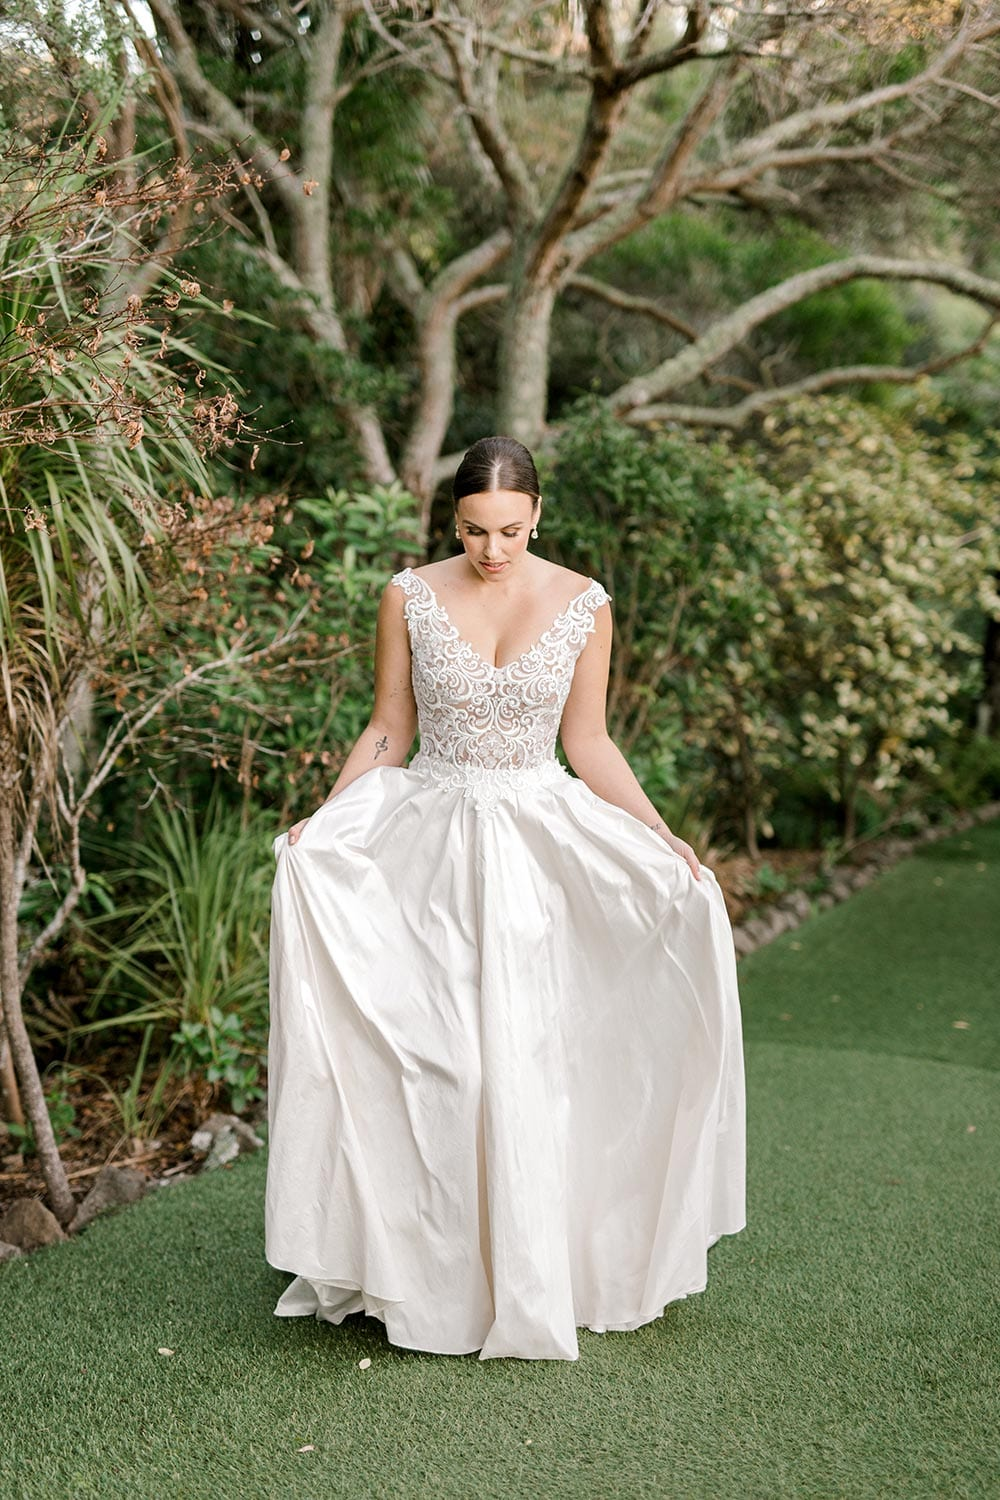 Ashleigh Wedding Dress from Vinka Design. Wedding dress with semi-sheer, richly embroidered fitted bodice on a nude base adorned with guipure lace. Dramatic silk dupion full skirt with side pockets. Full length dress portrait with hands in pockets showing skirt layers, photographed at Tui Hills by Emmaline Photography.